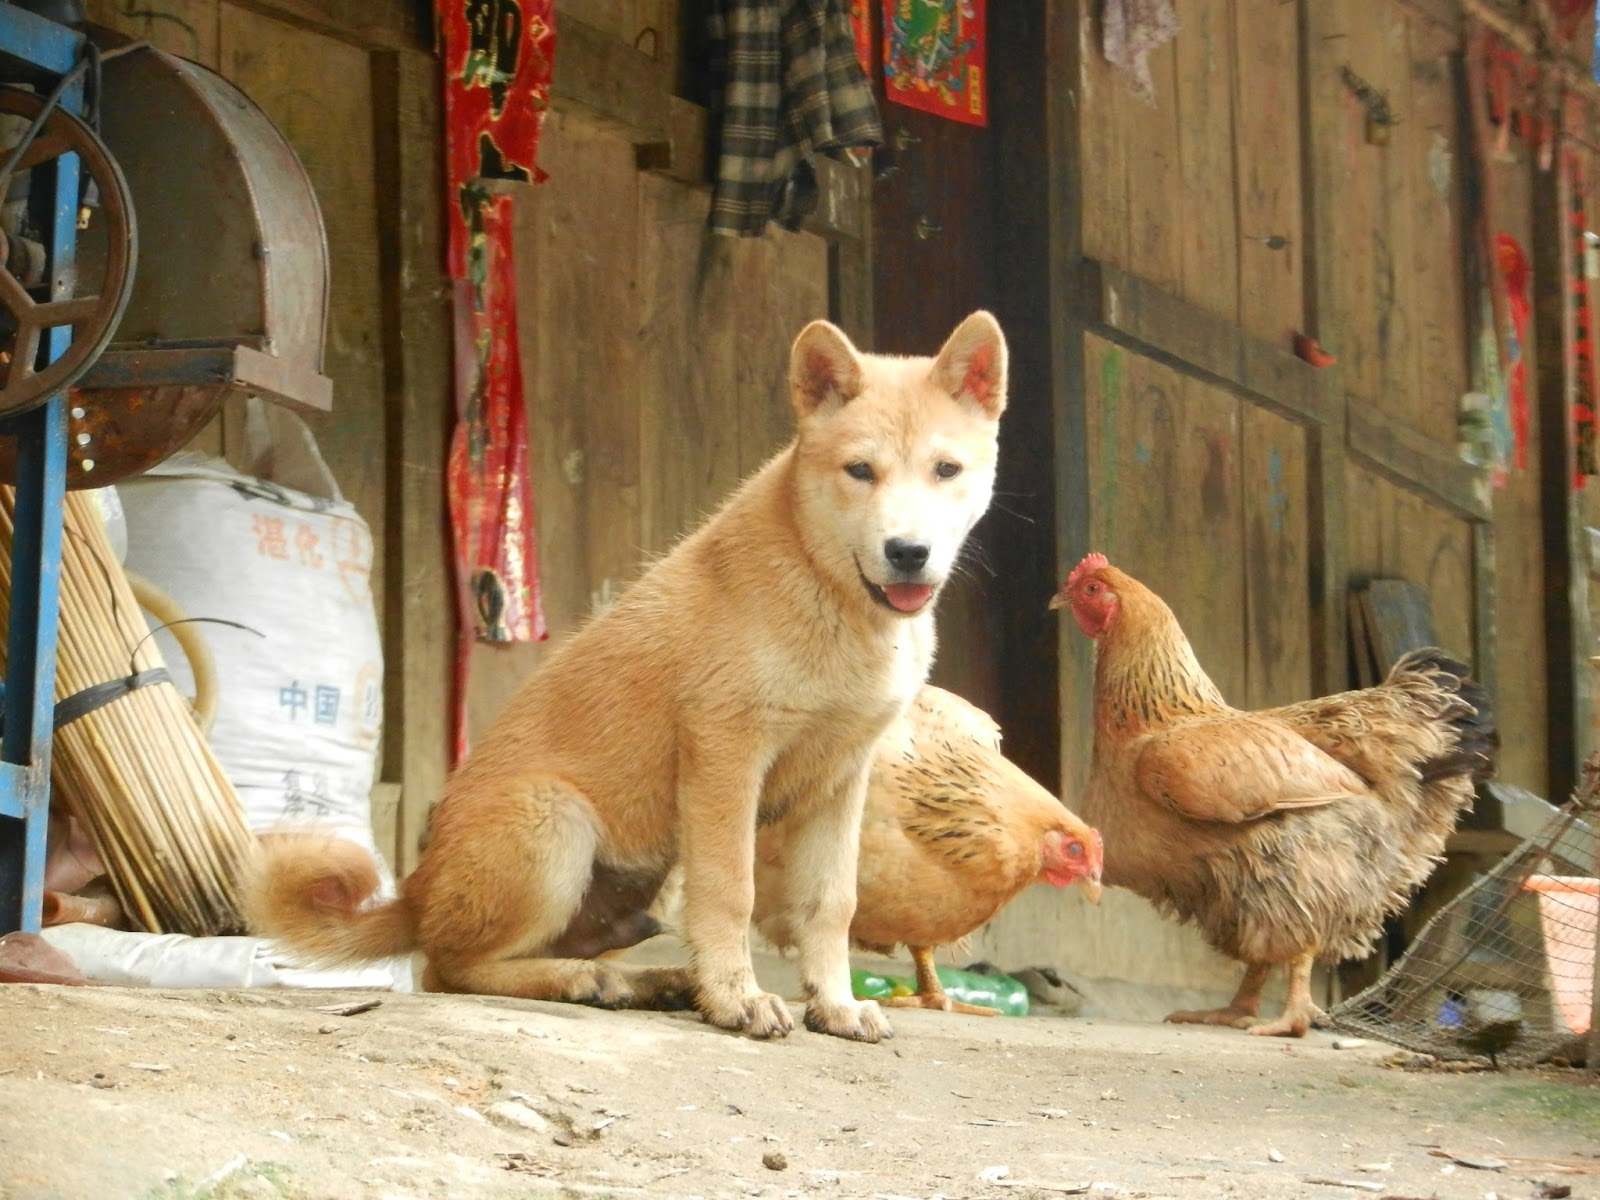 Chubao+Village+wolf+dog+Hainan+China.JPG